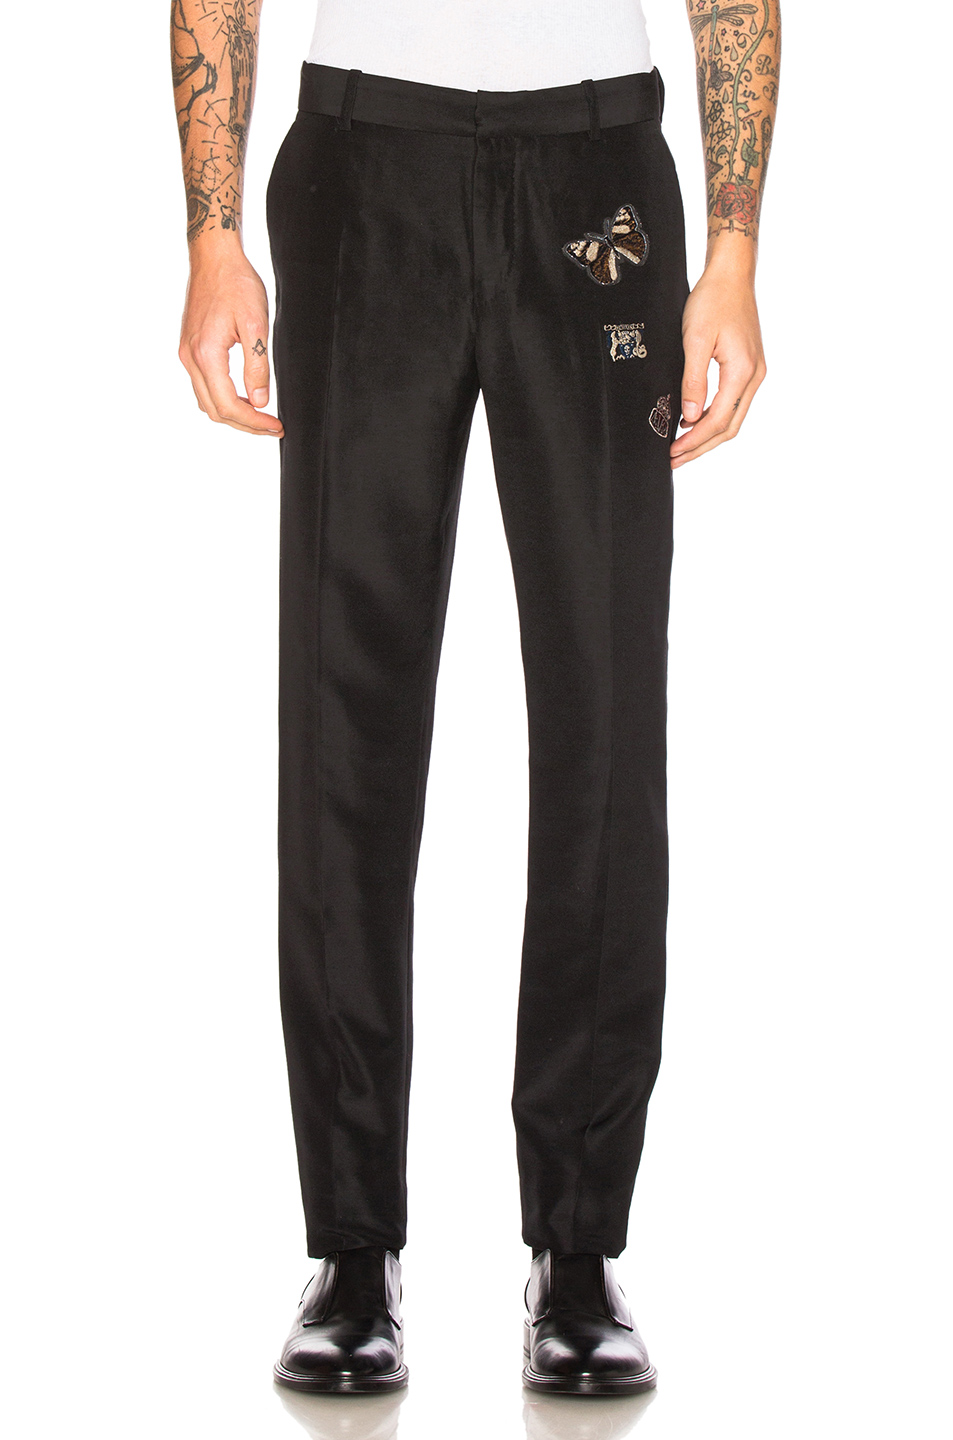 Alexander McQueen Embroidered Trousers in Black